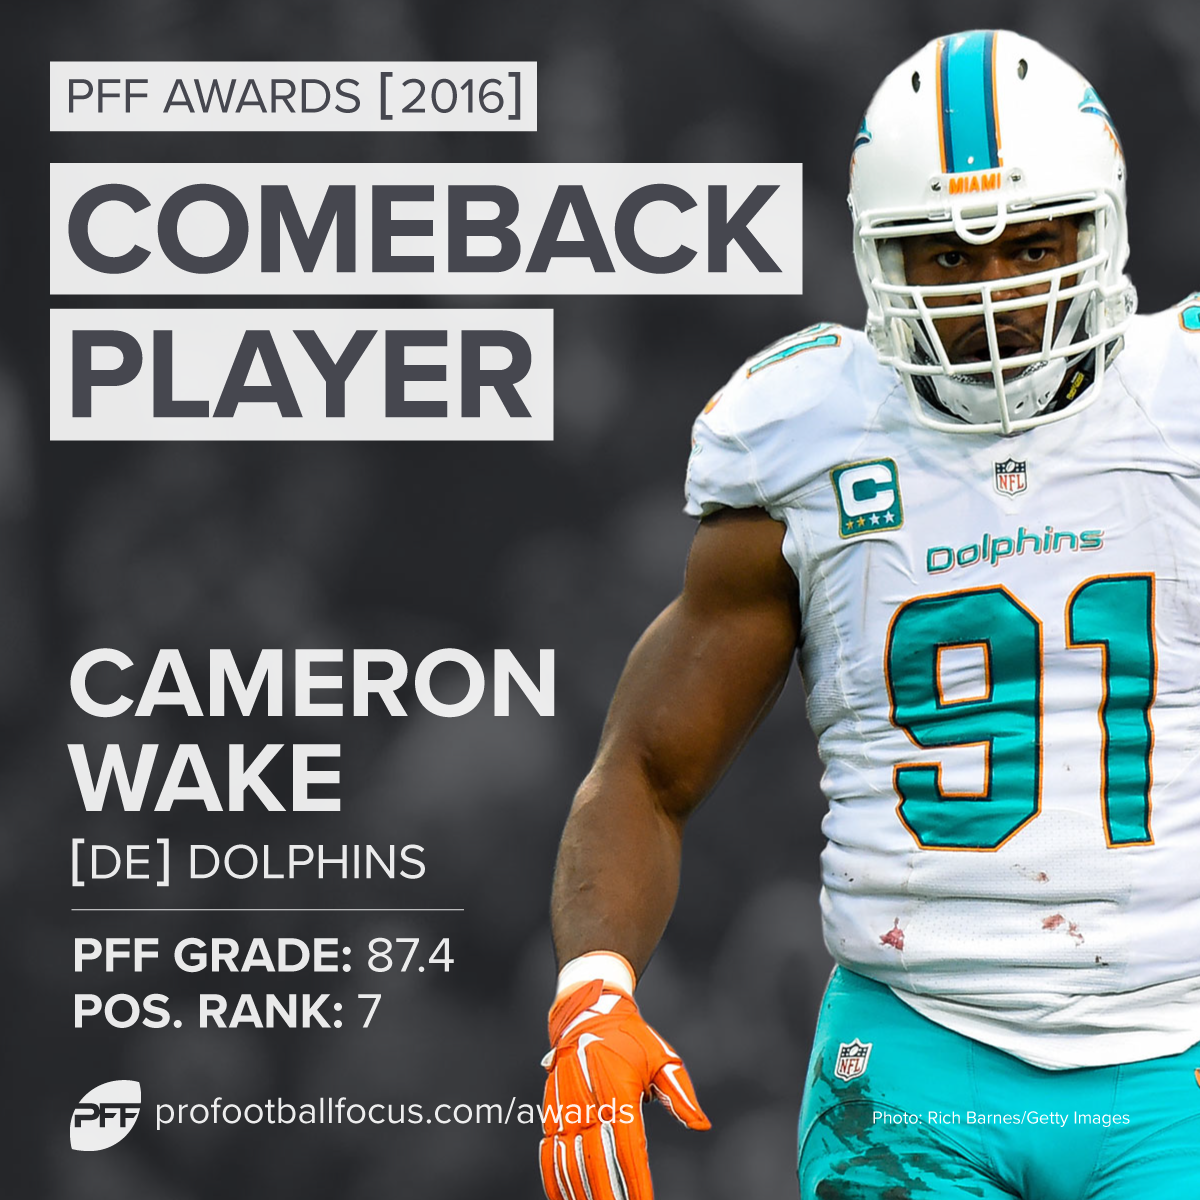 PFF 2016 Comeback Player of the Year: Cameron Wake